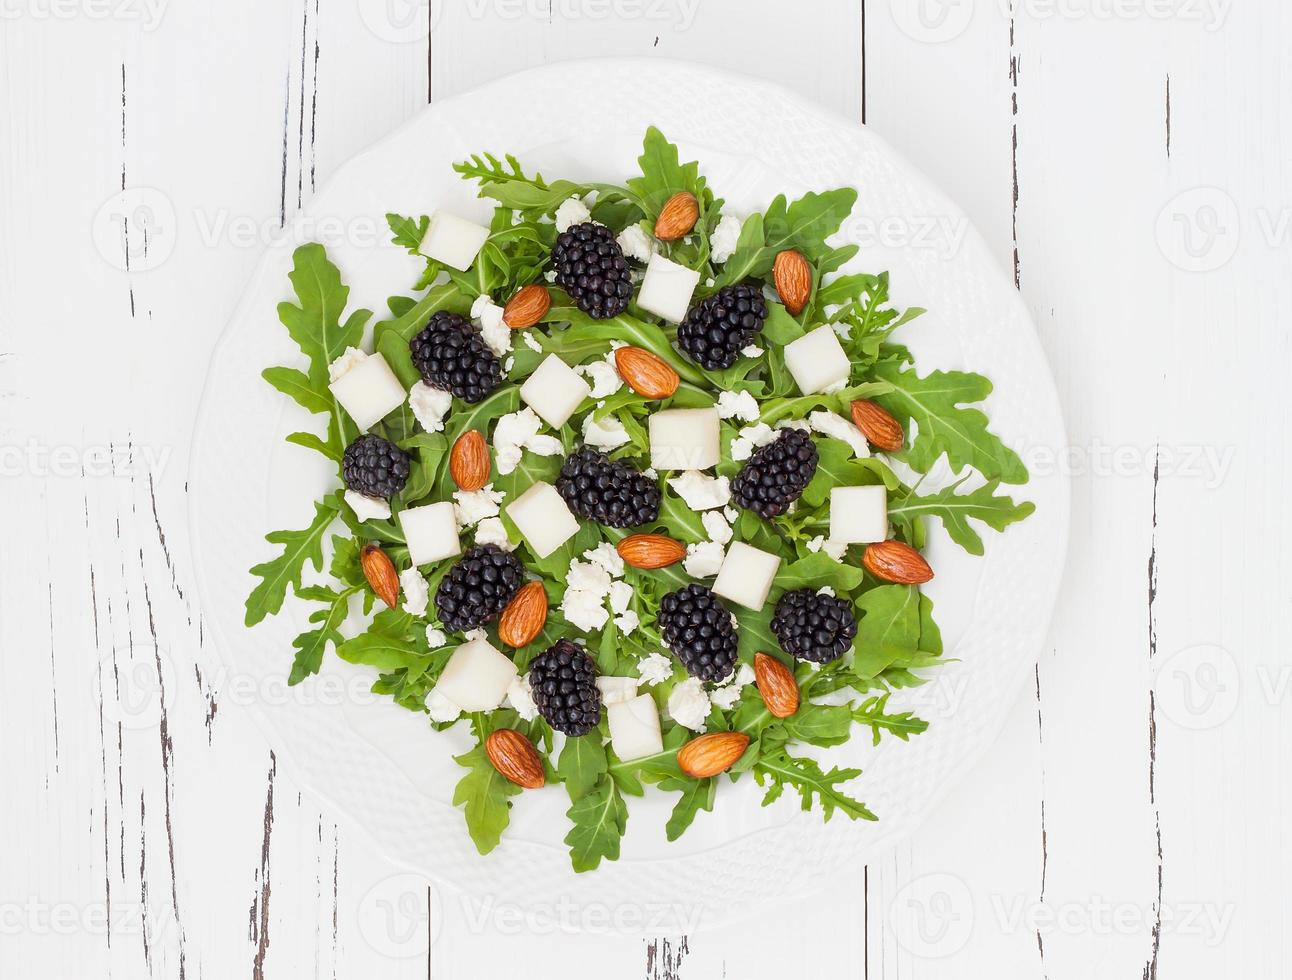 Green salad with arugula, melon, blackberries, almonds and feta cheese photo